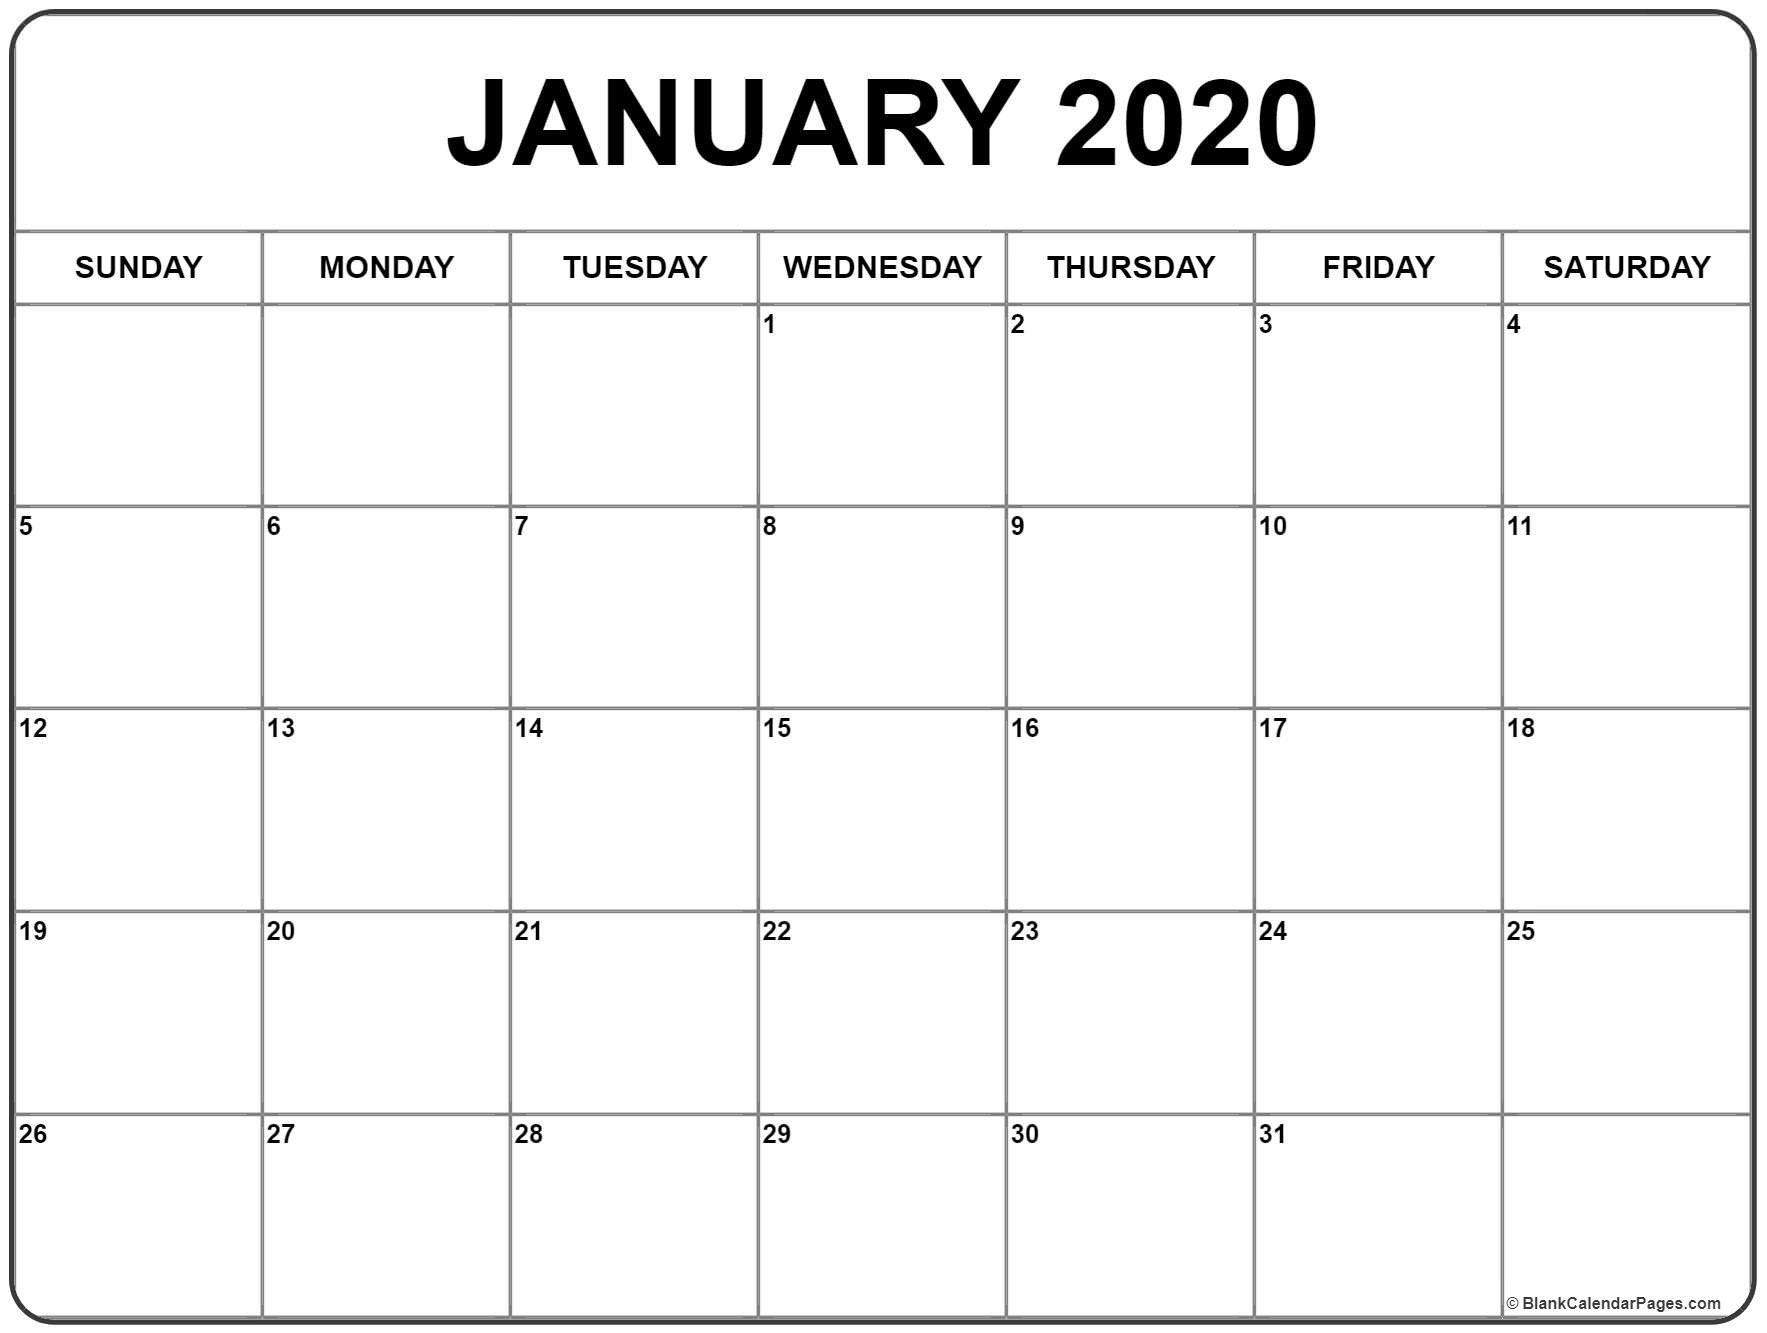 Blank January 2020 Calendar Printable - Togo.wpart.co